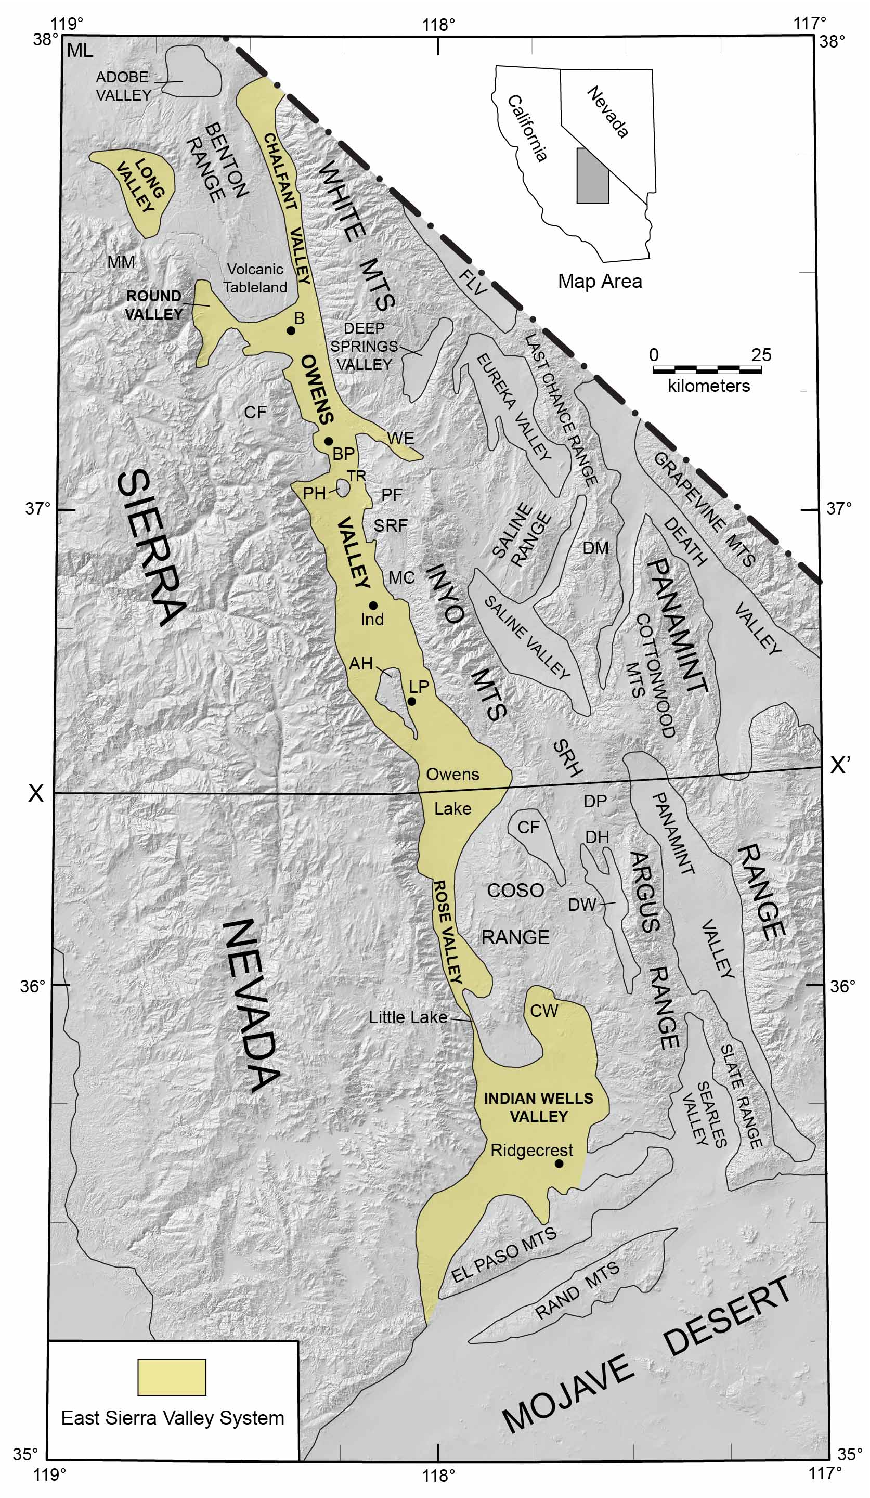 Figure 2 From Structural Evolution Of The East Sierra Valley System